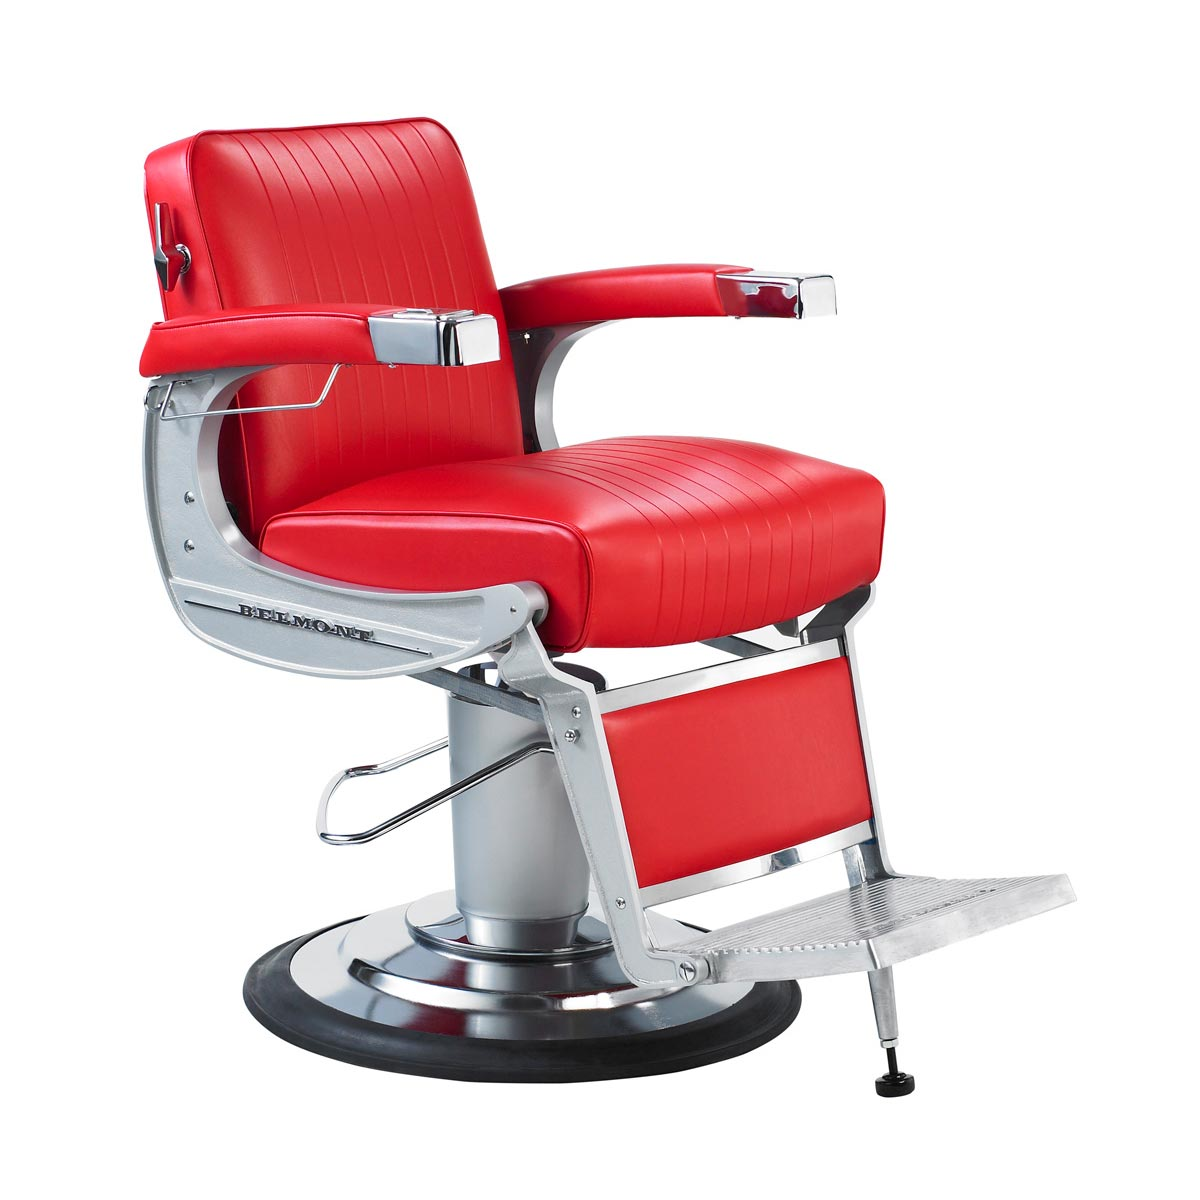 Takara Belmont Elegance Barber Chair with Recliner alternative product image 1